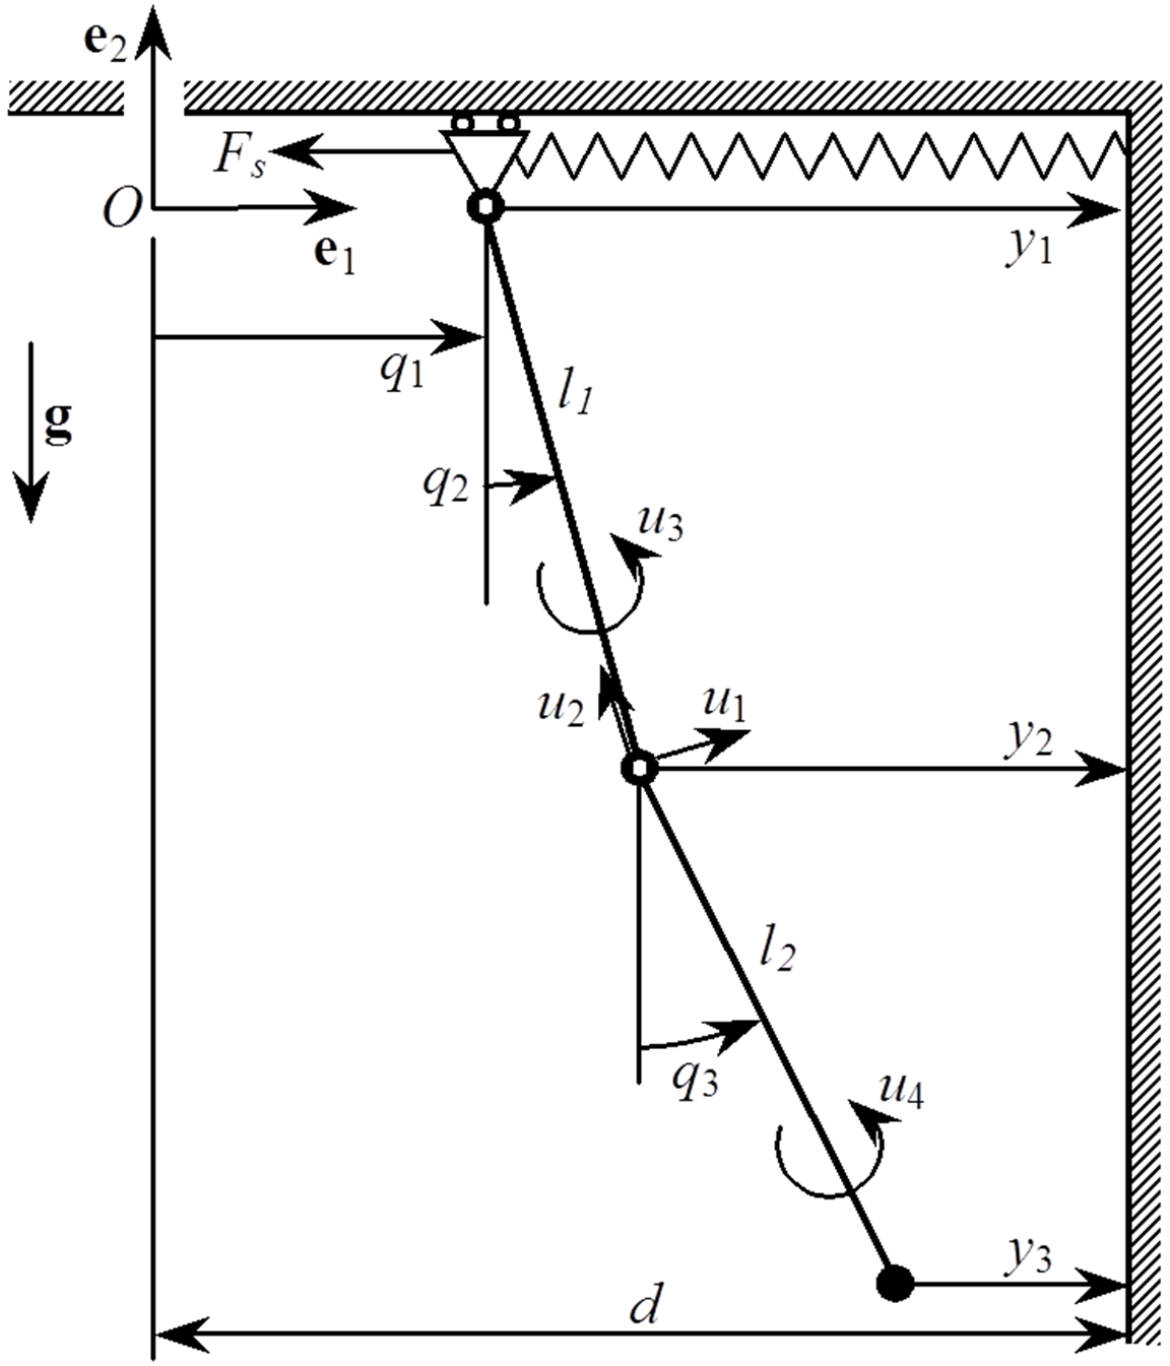 Model for integrated motion measurement of a double pendulum (c) Jörg F. Wagner